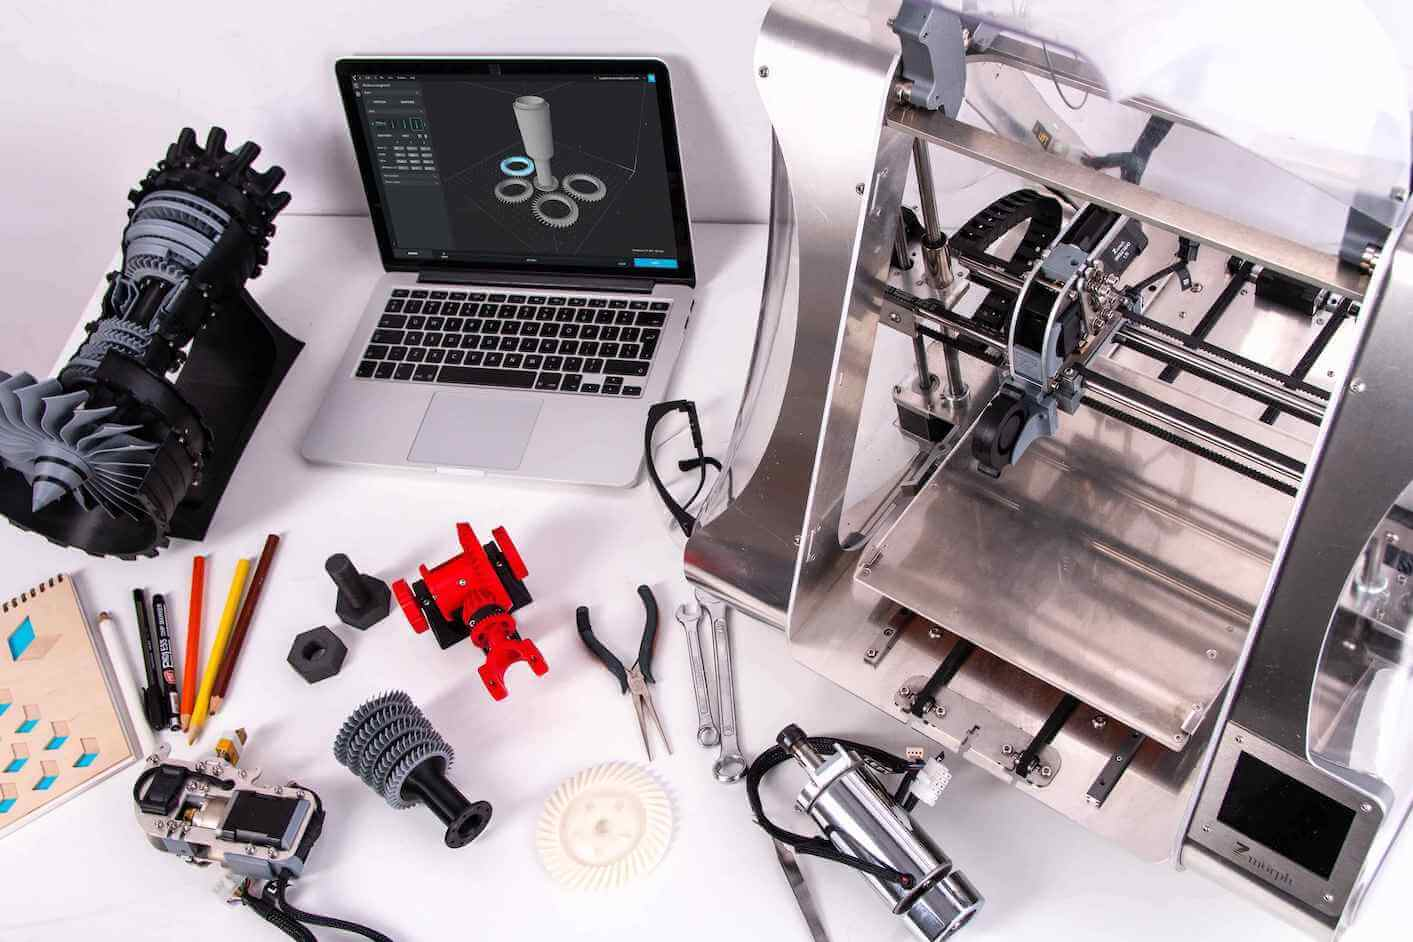 Overview on the current state of 3D Printing